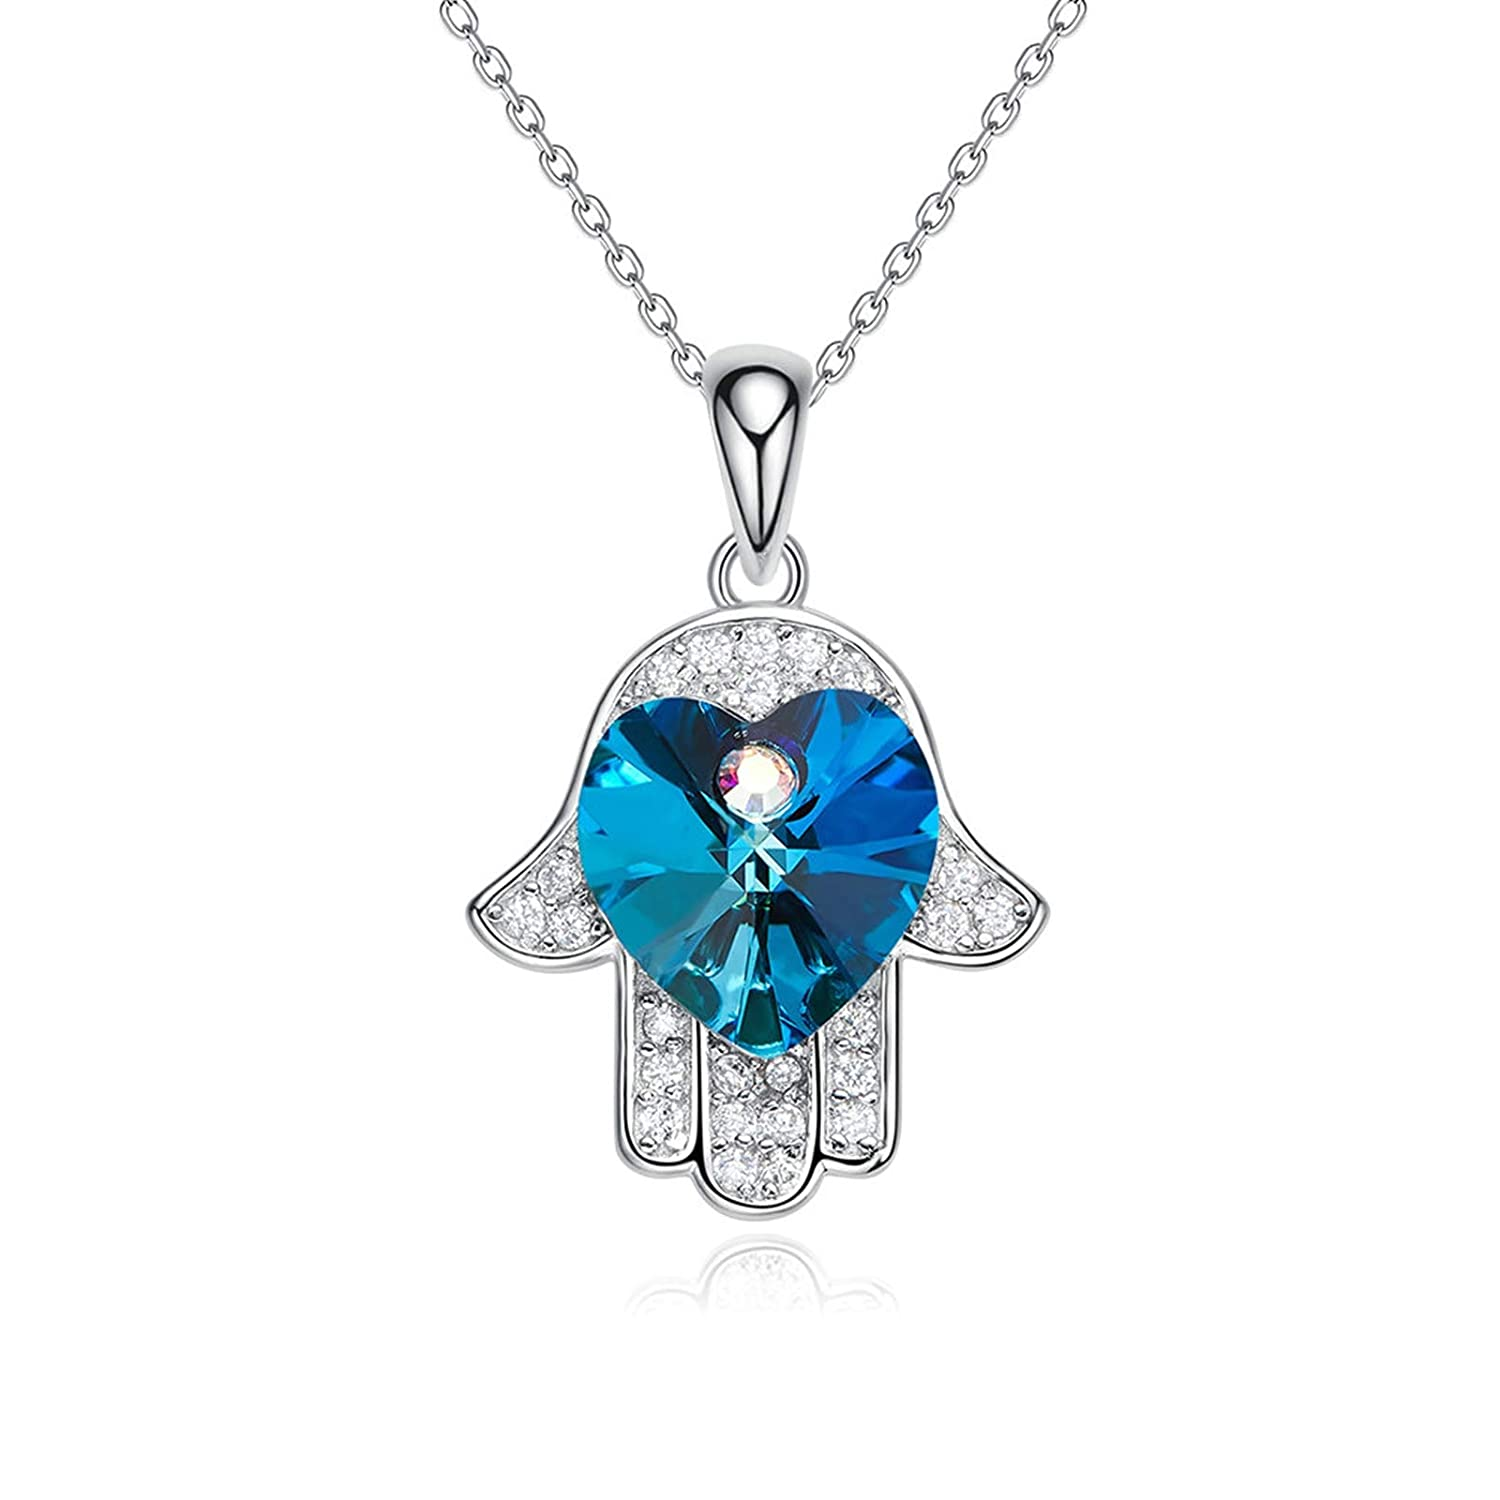 ANAZOZ S925 Sterling Silver Heart Crystal Hamsa Hand Pendant Necklace Gift Box